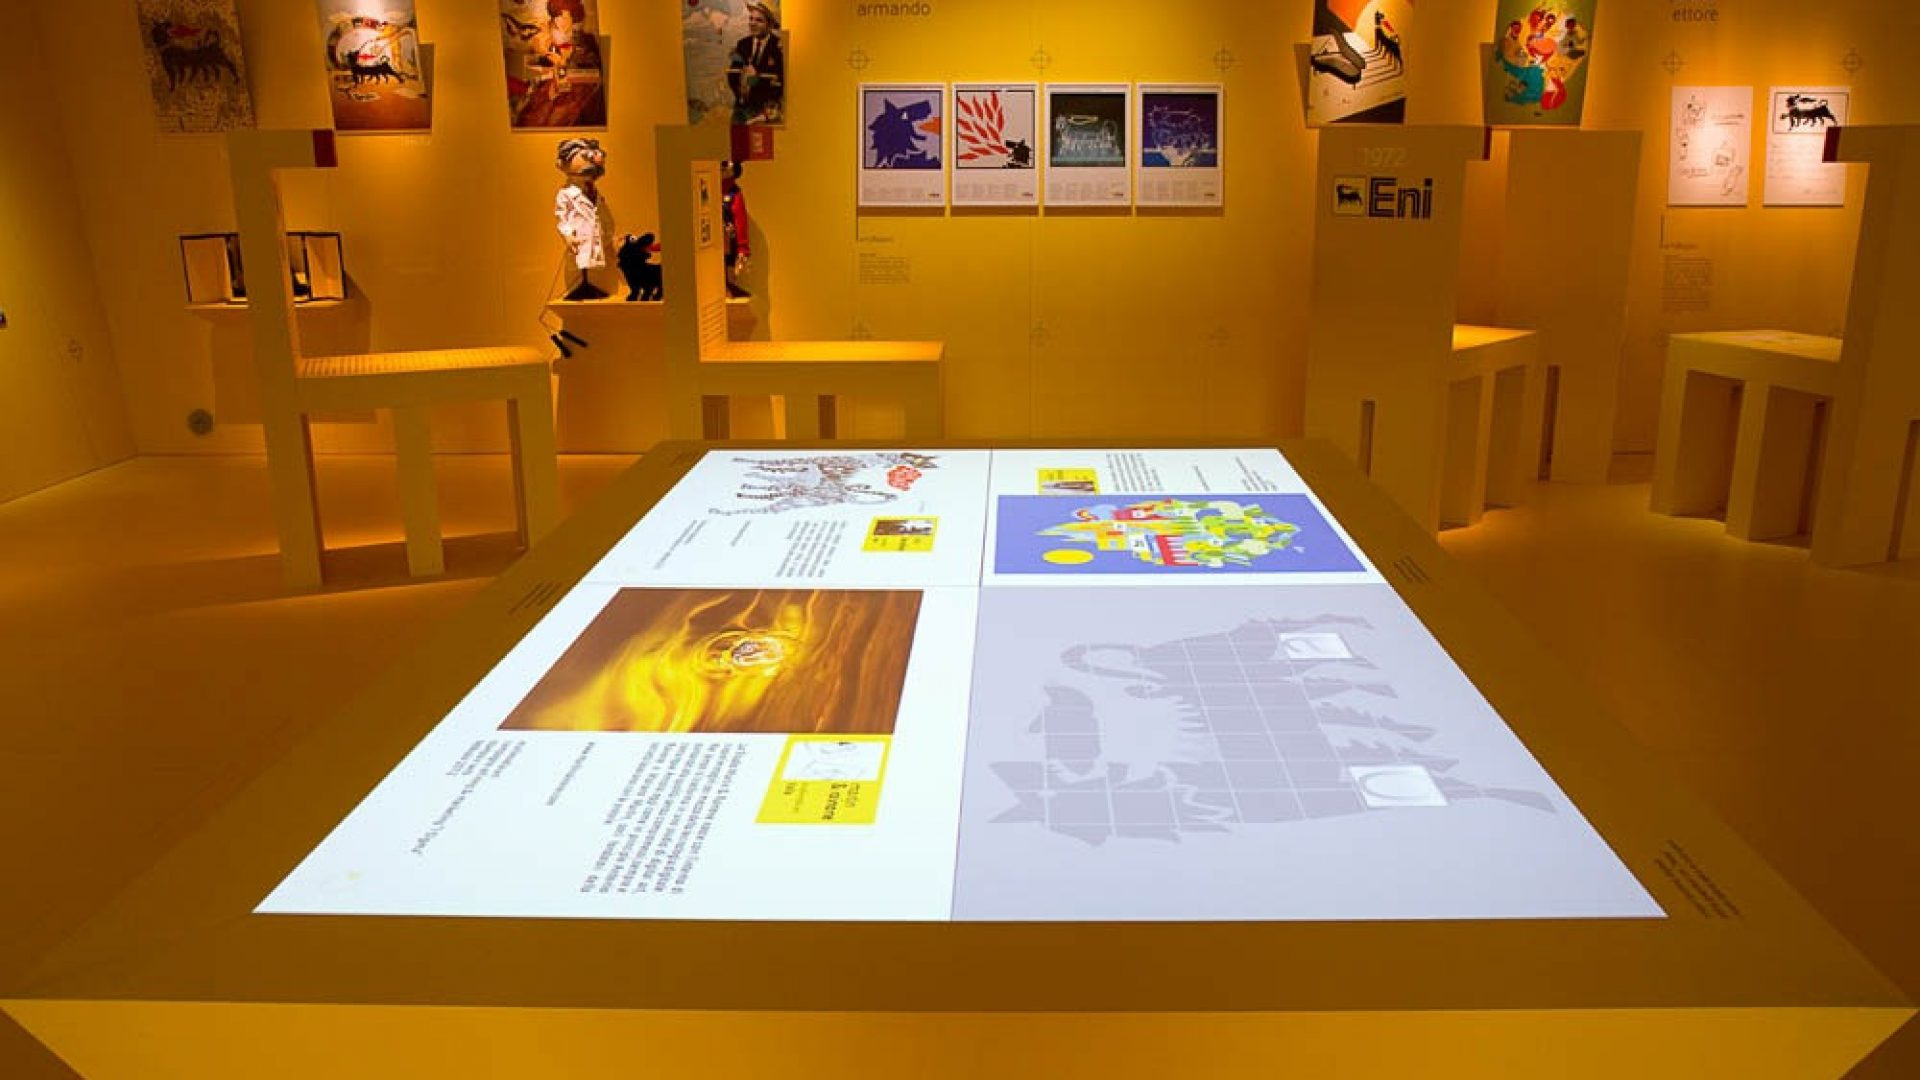 Eni - Path that spans 50 years of Eni brand history through Italian history with emphasis on images/characters/situations that have left their mark on the collective imagination   - by Artes Group International